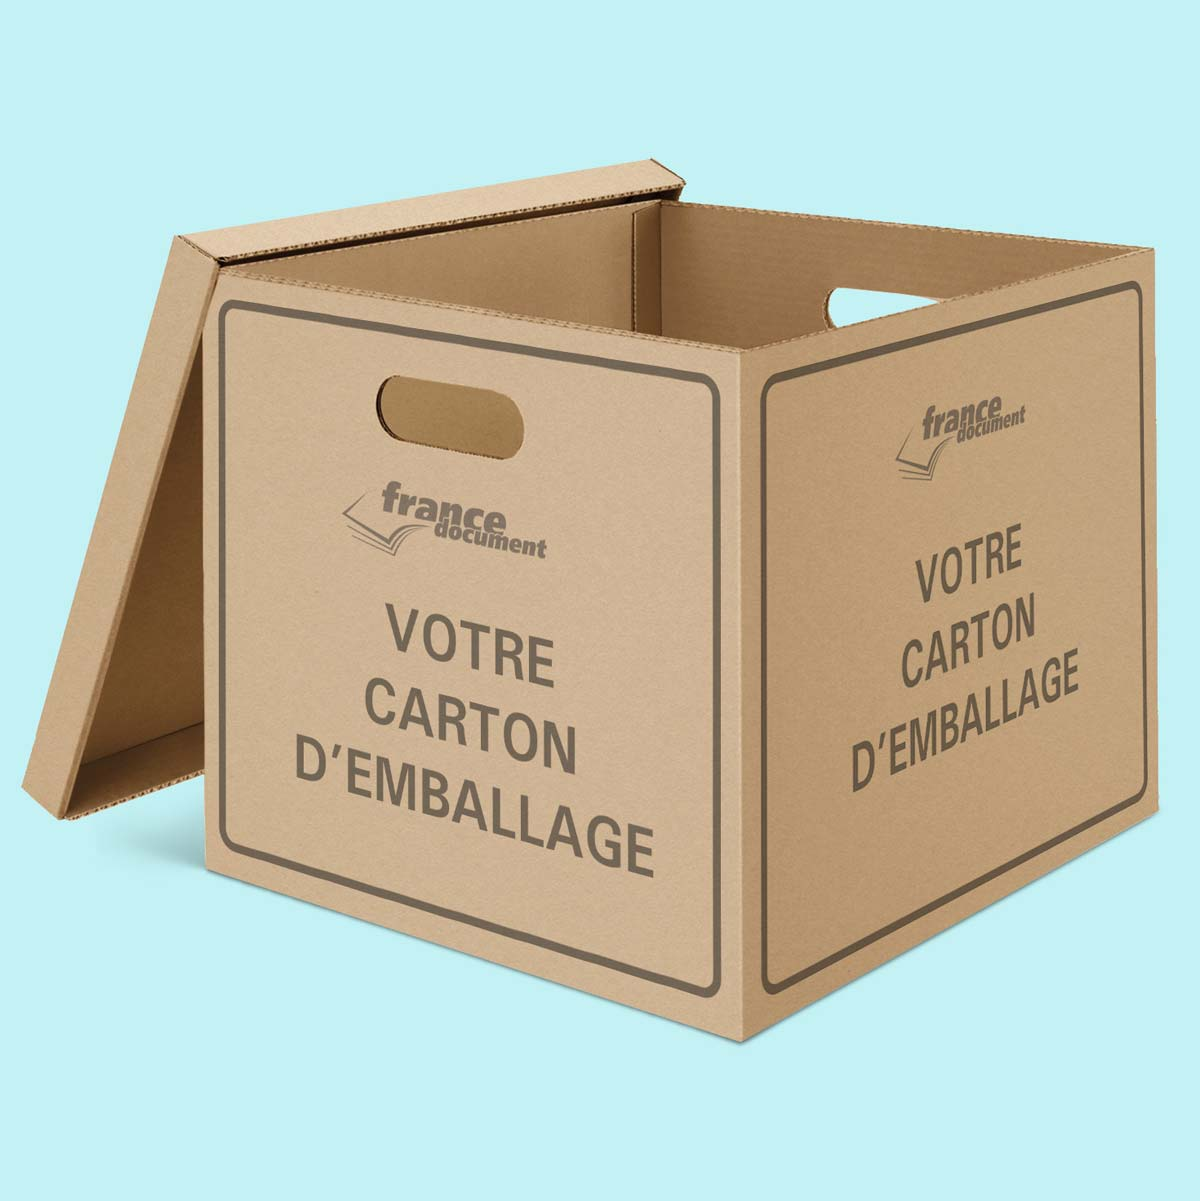 Cartons d'emballage